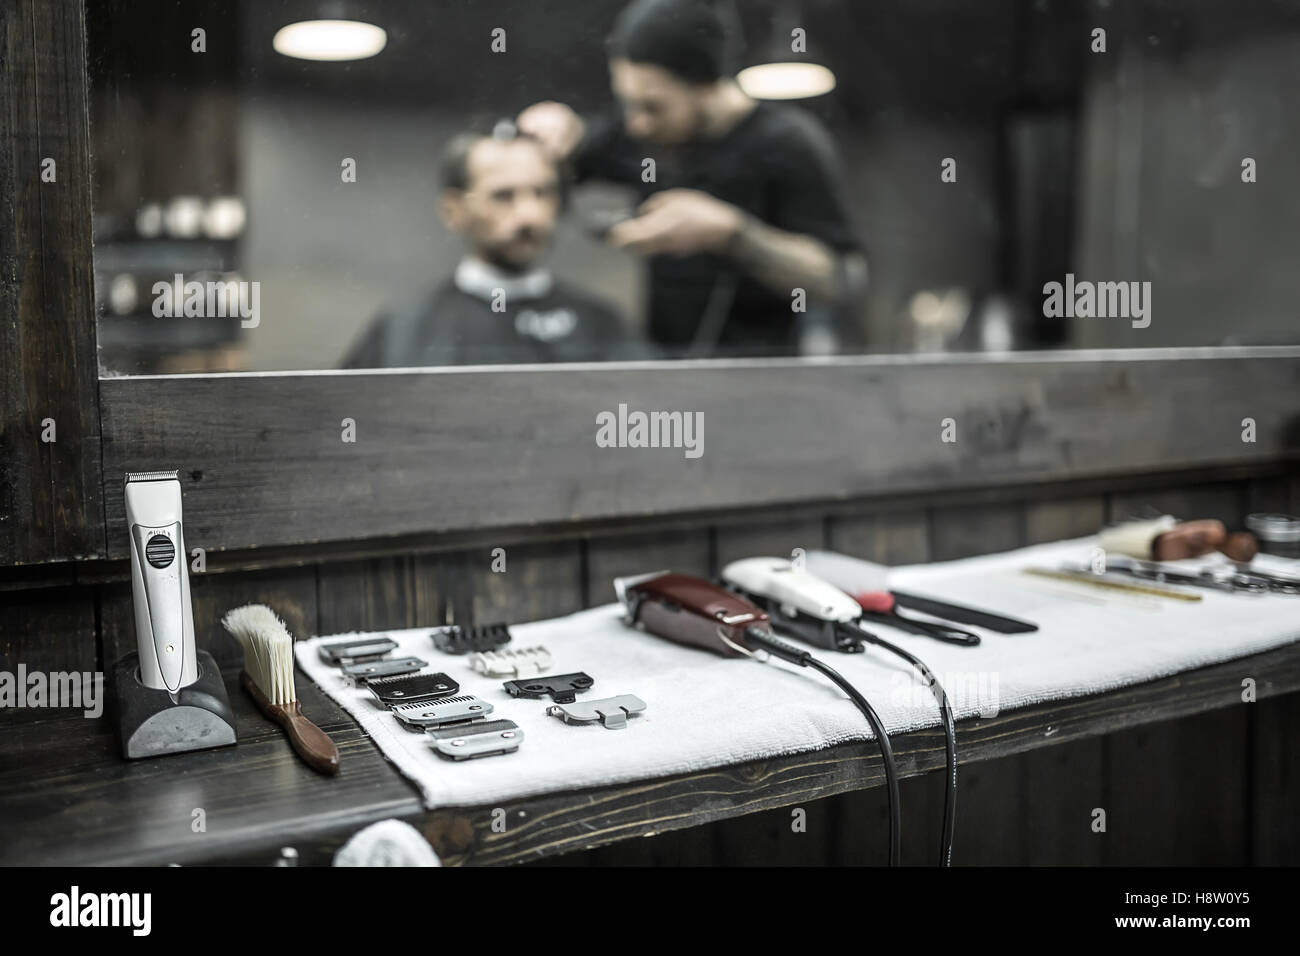 Accessories of hairdresser in barbershop - Stock Image